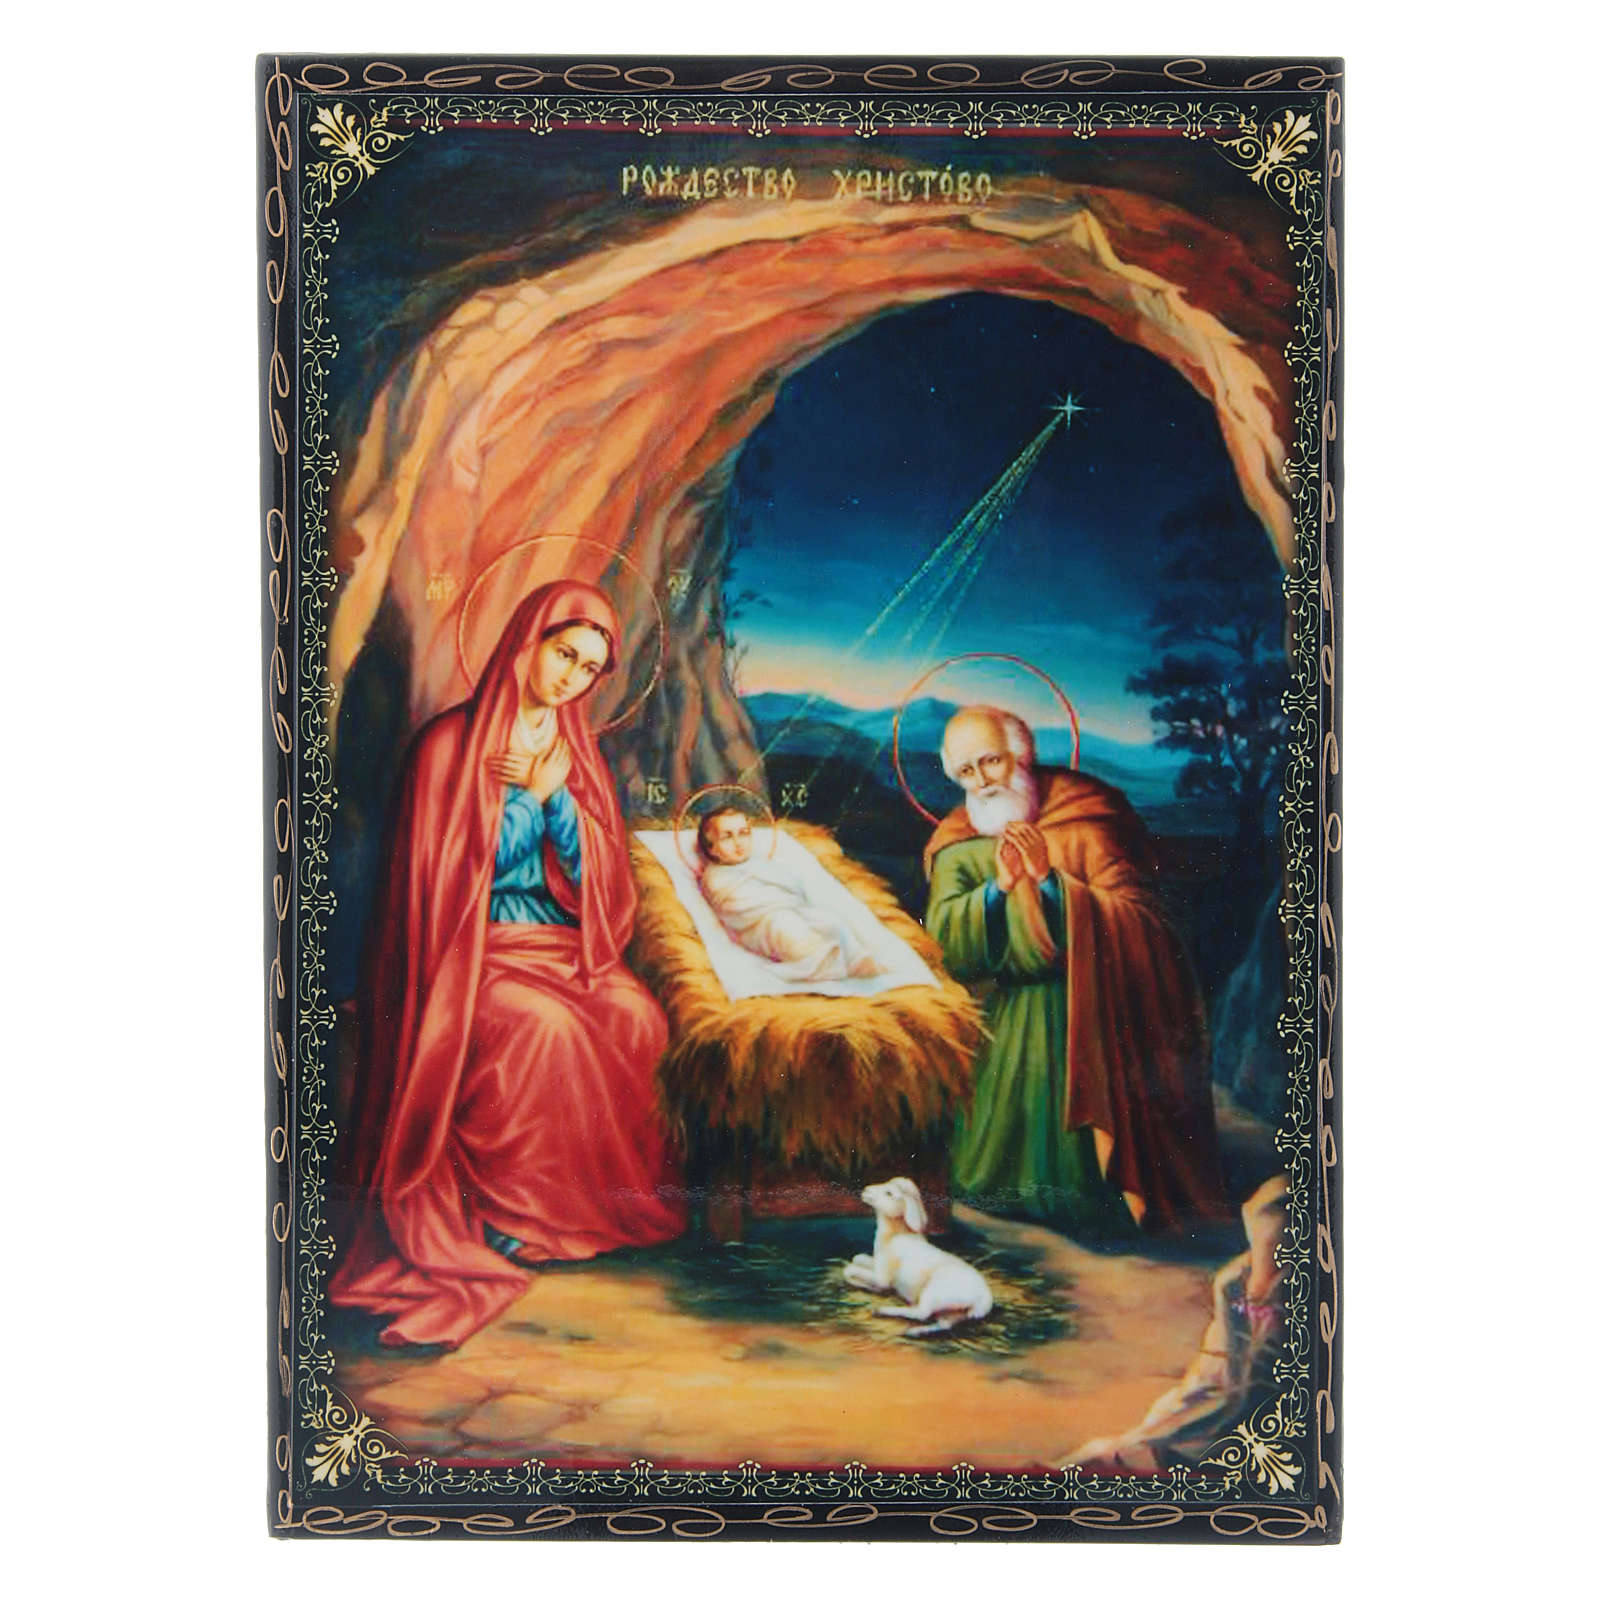 Papier-machè and lacquer box The Birth of Jesus Christ decoupage with decorations 22X16 cm 4